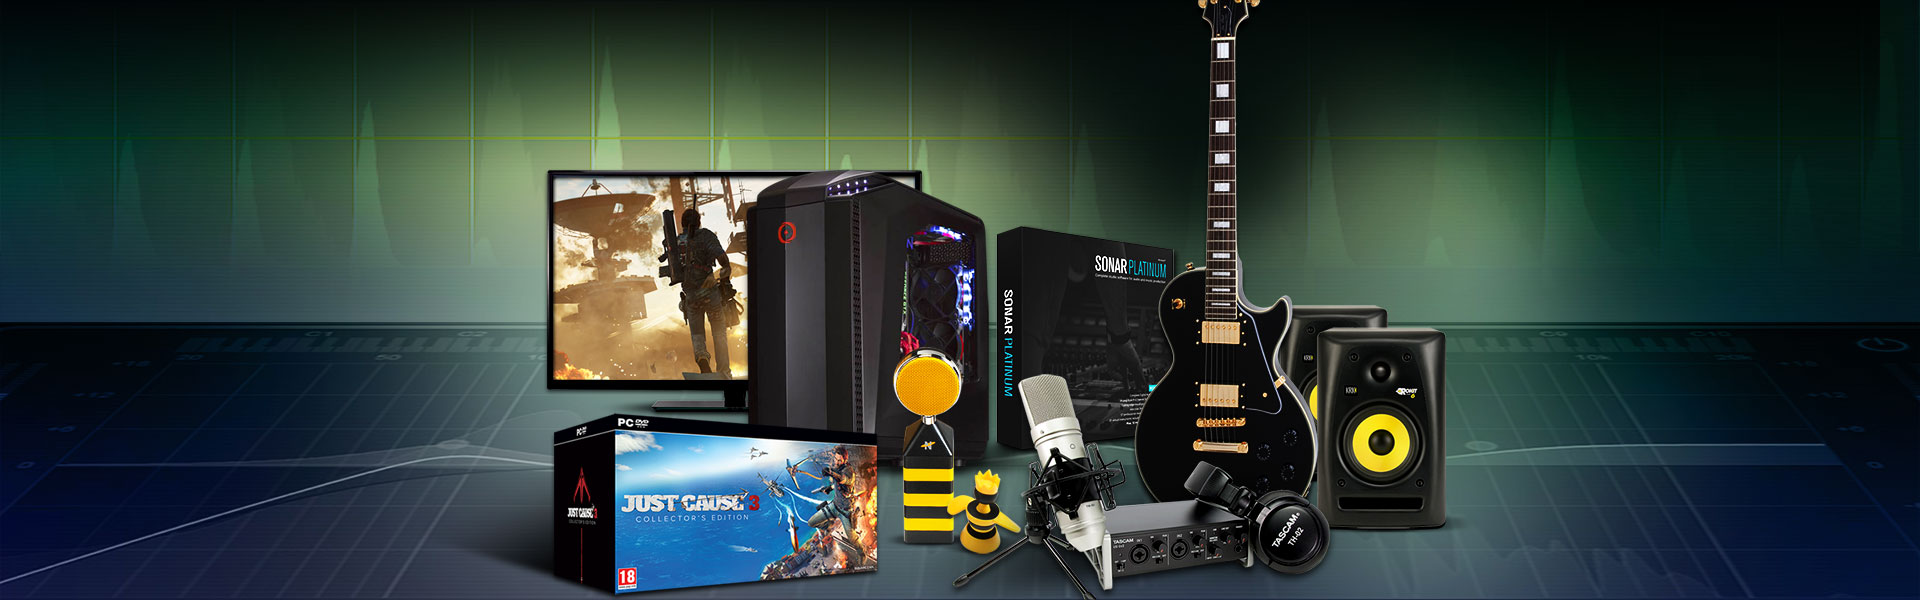 Just Cause 3_Make the launch trailer_Prizes